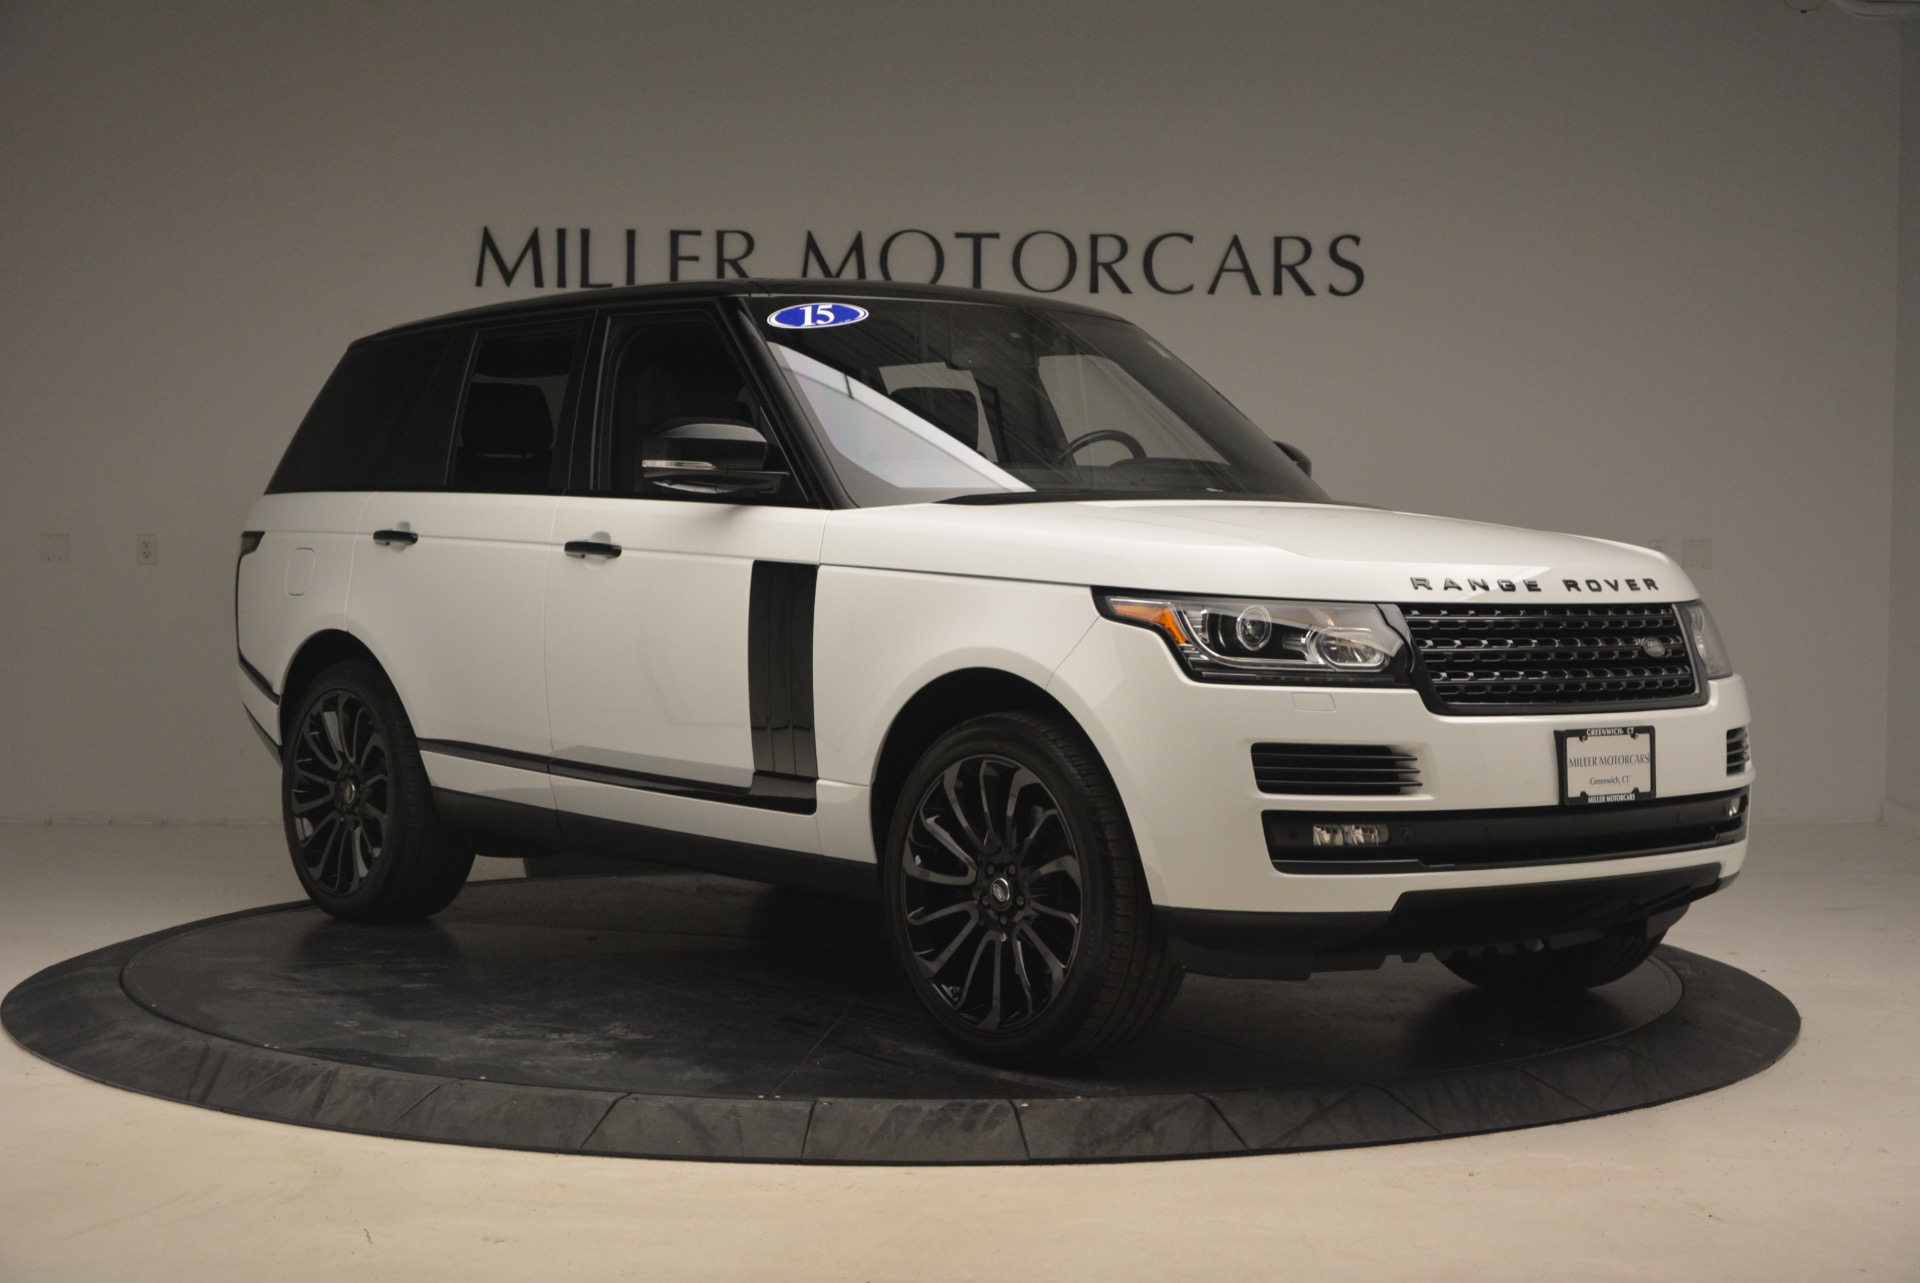 Used 2015 Land Rover Range Rover Supercharged For Sale In Greenwich, CT 1292_p11